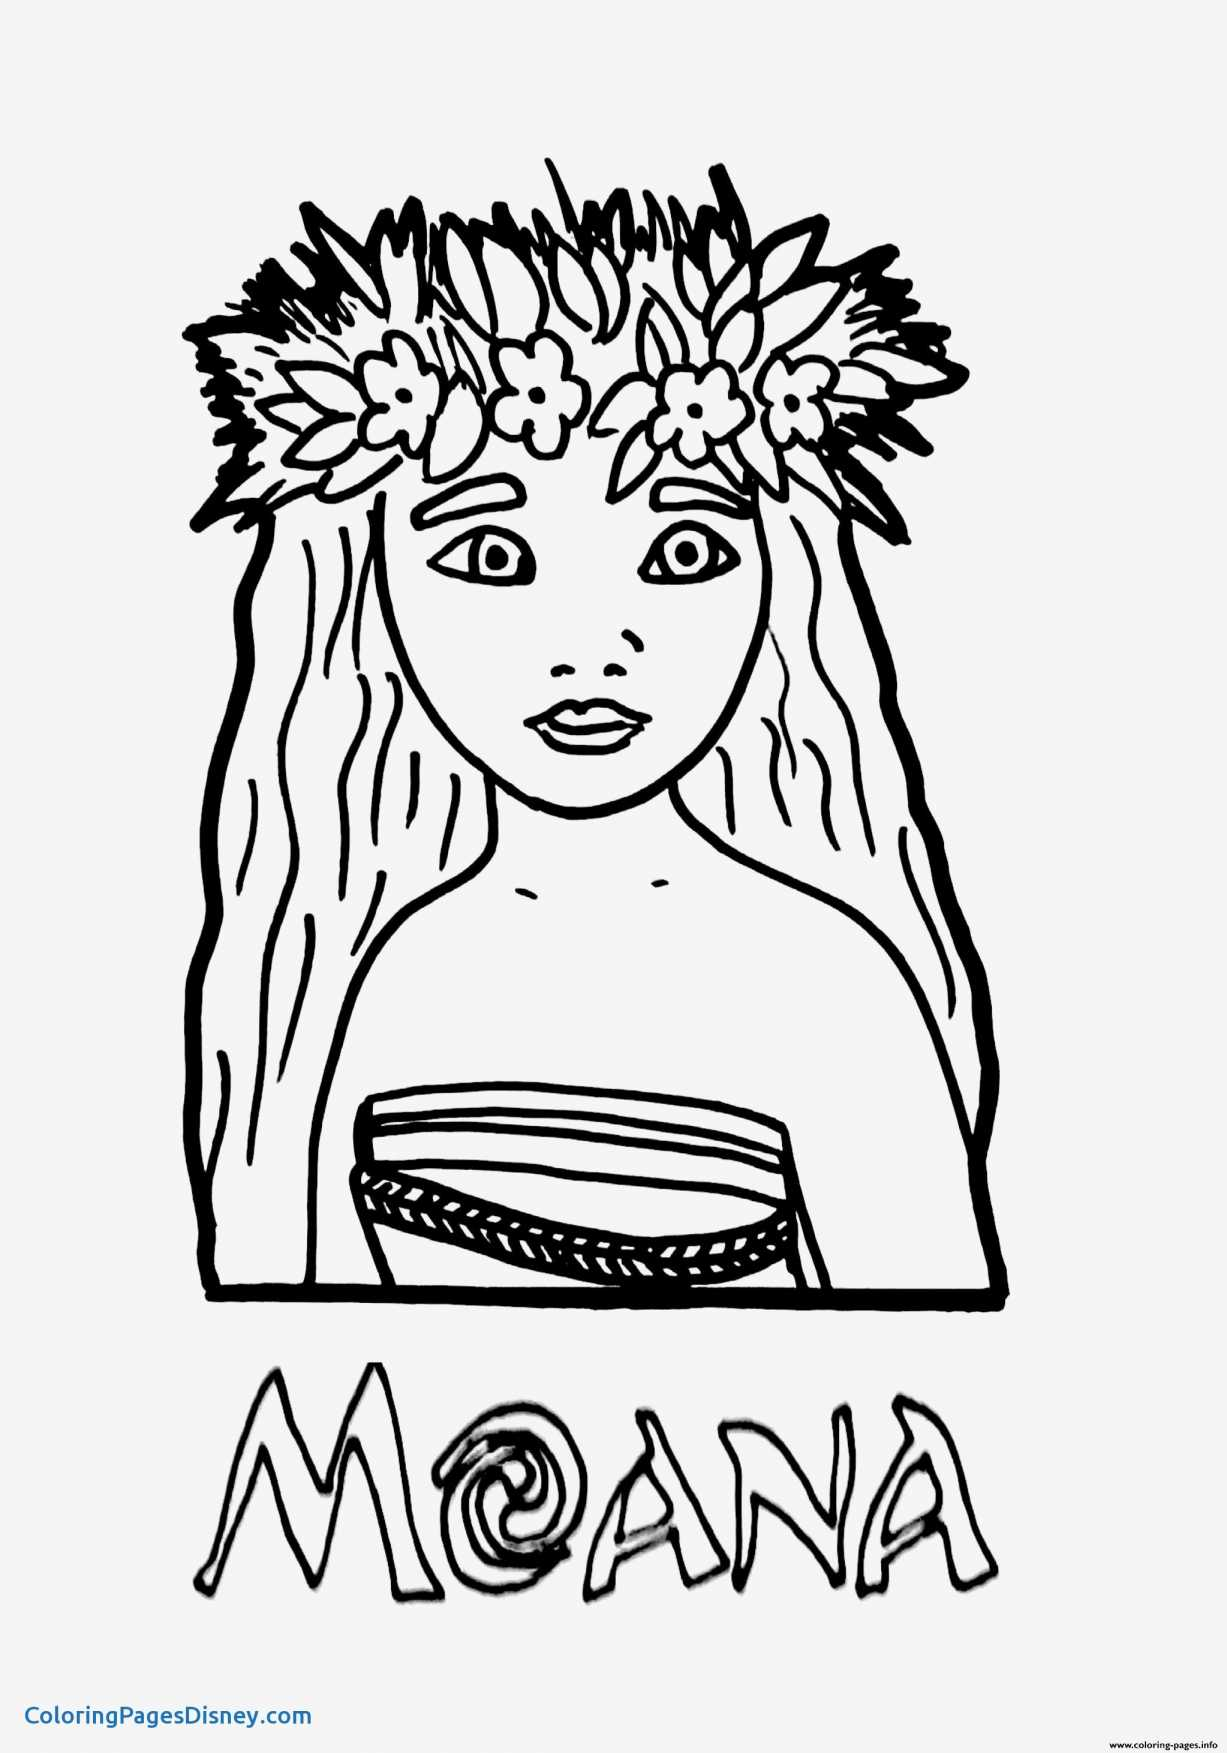 Merry Christmas Mom Coloring Pages With Free Cross